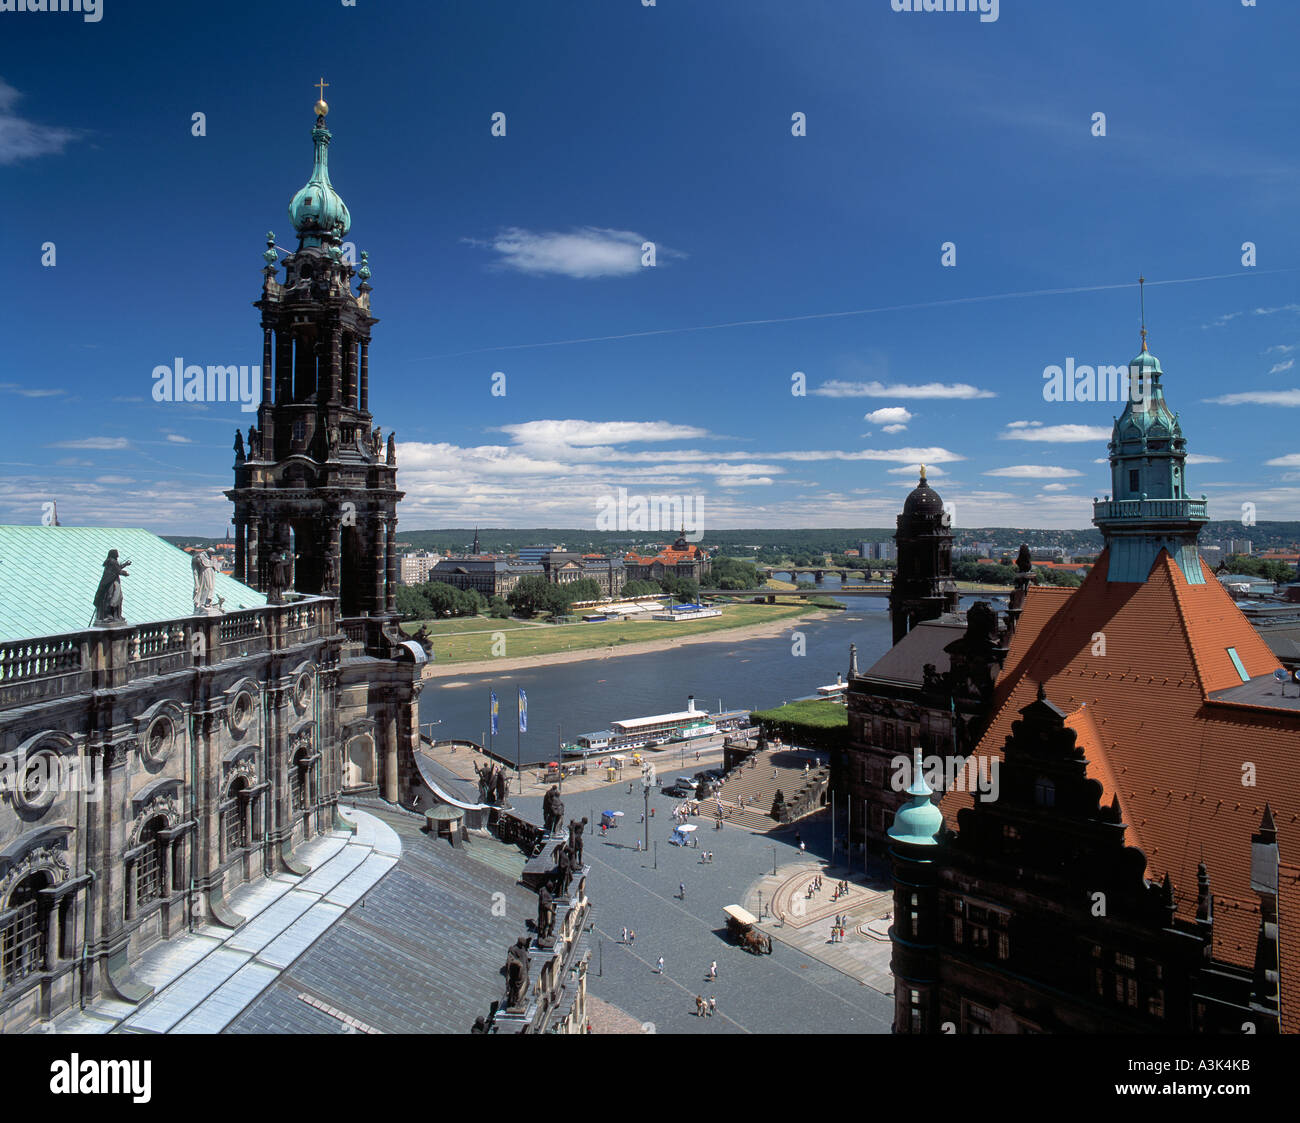 elbepromenade mit altstadtblick und hofkirche in dresden elbe stock photo royalty free image. Black Bedroom Furniture Sets. Home Design Ideas